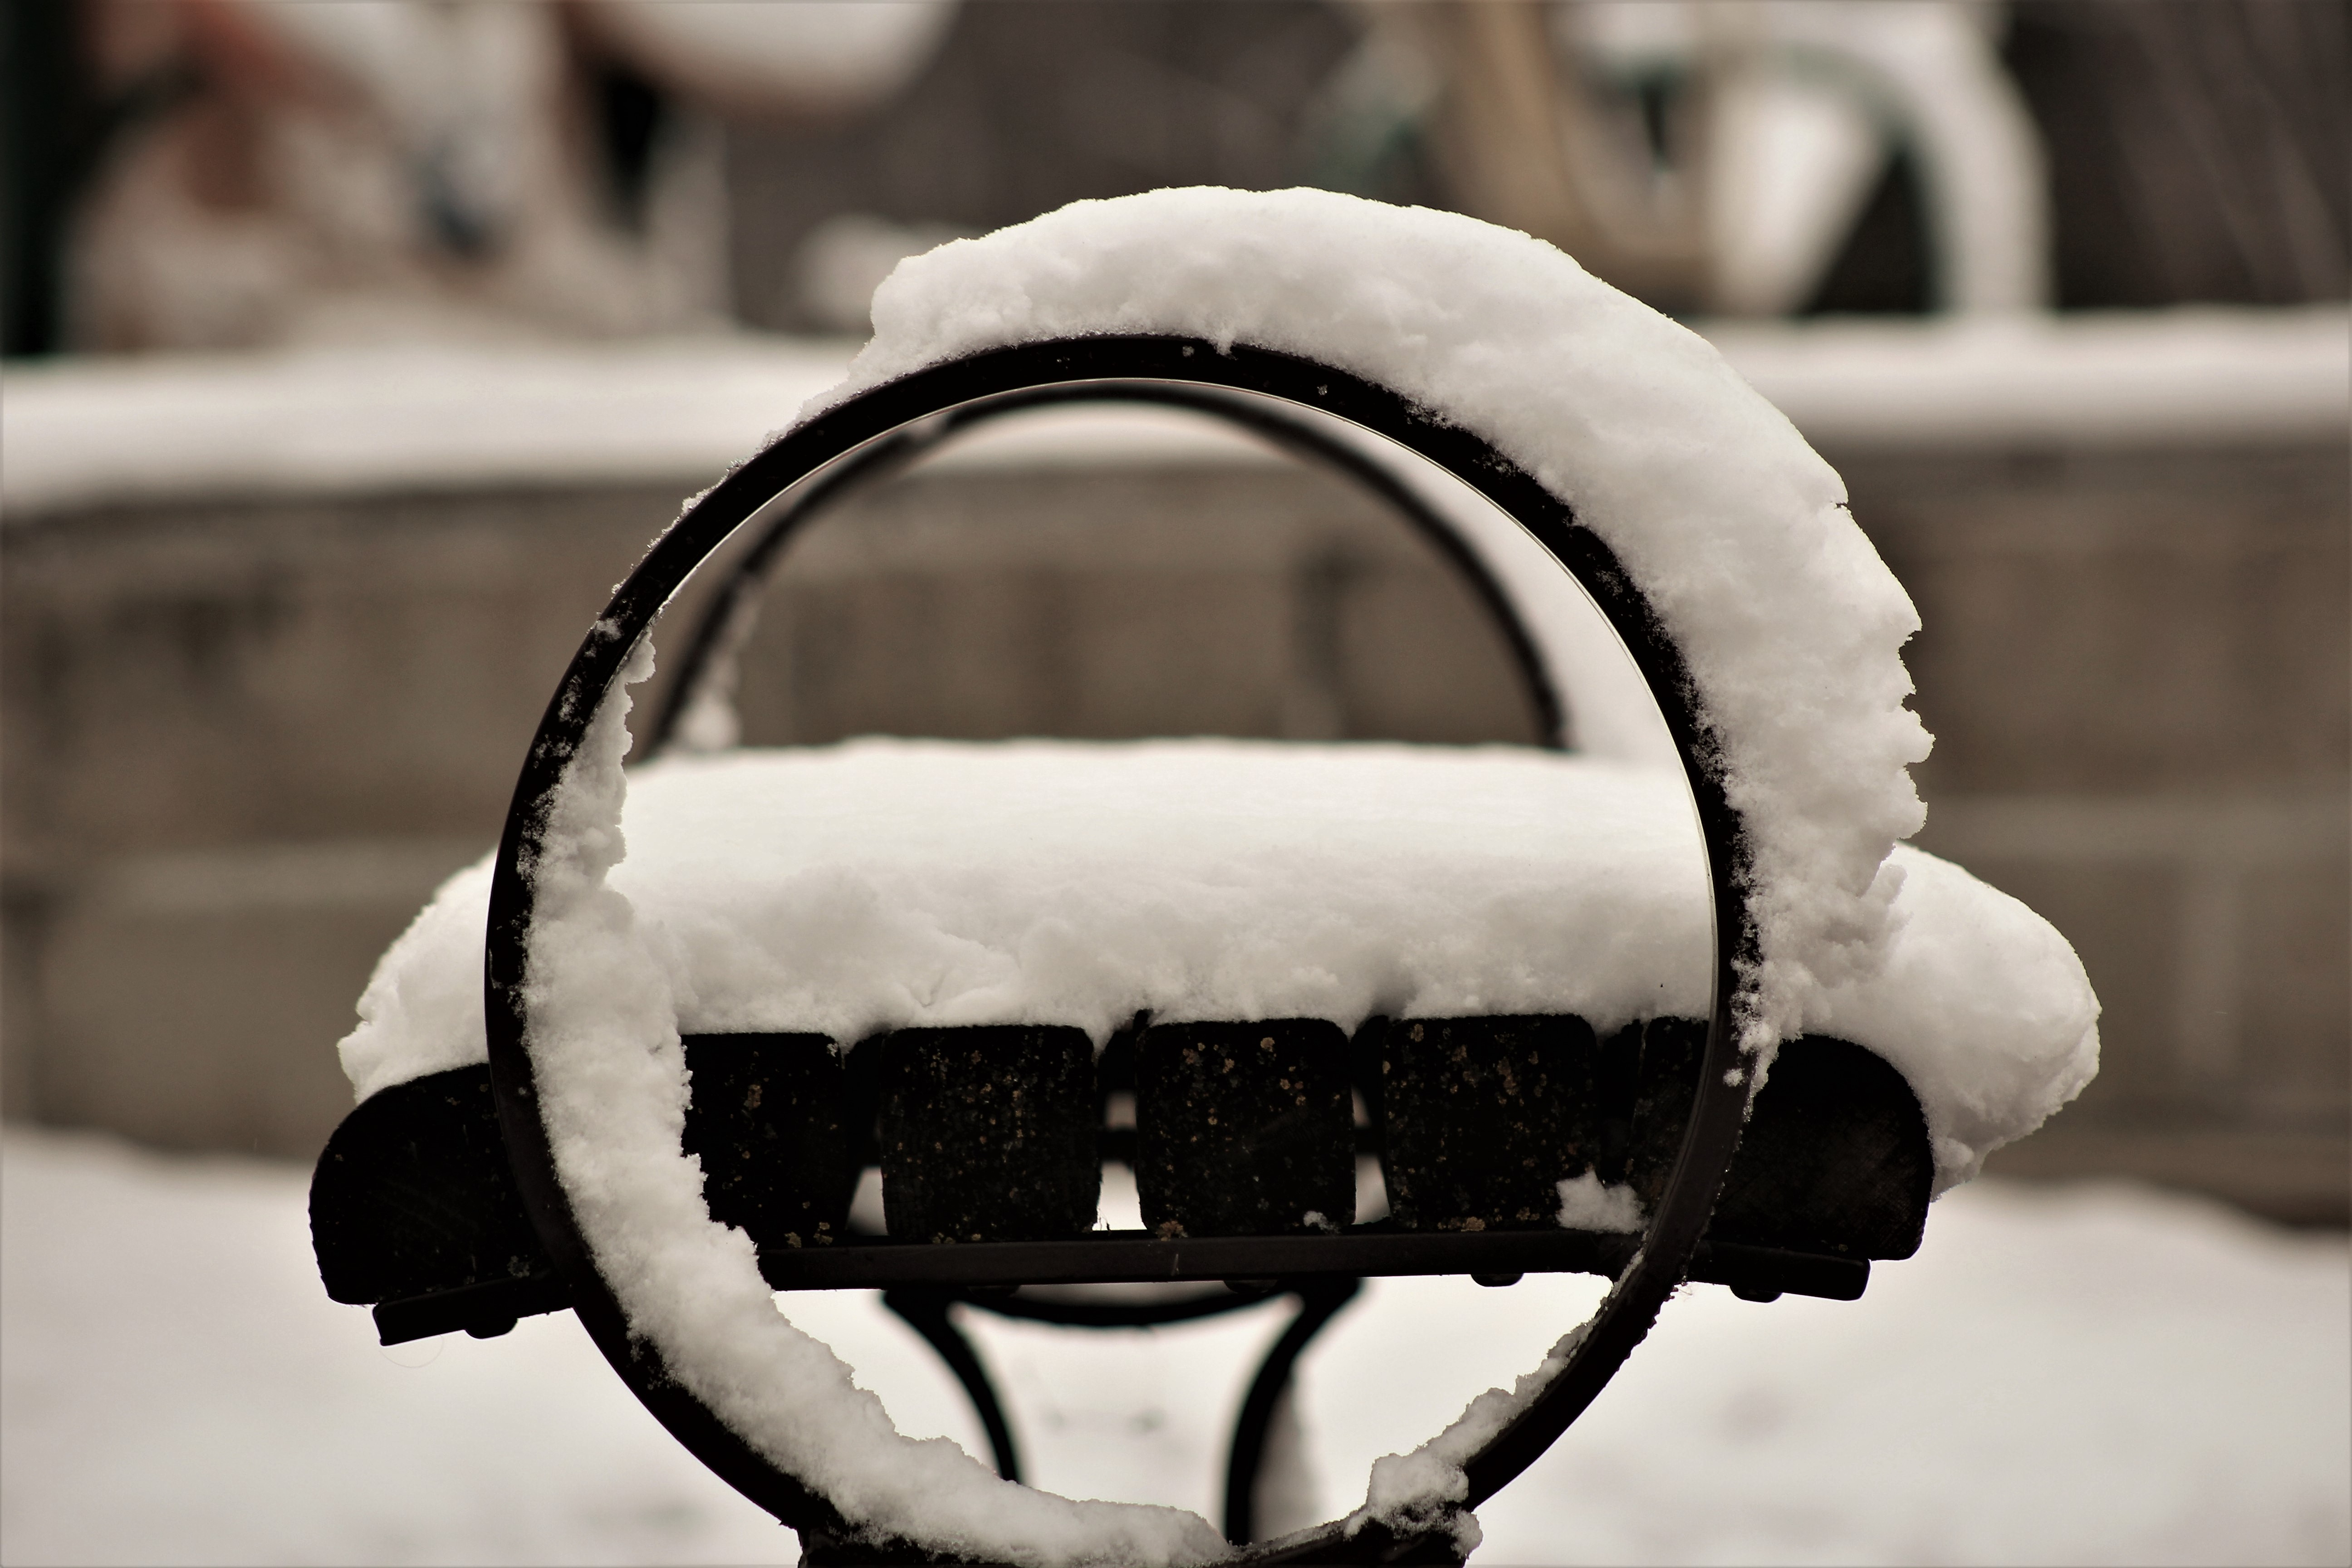 Bench in the snow photo